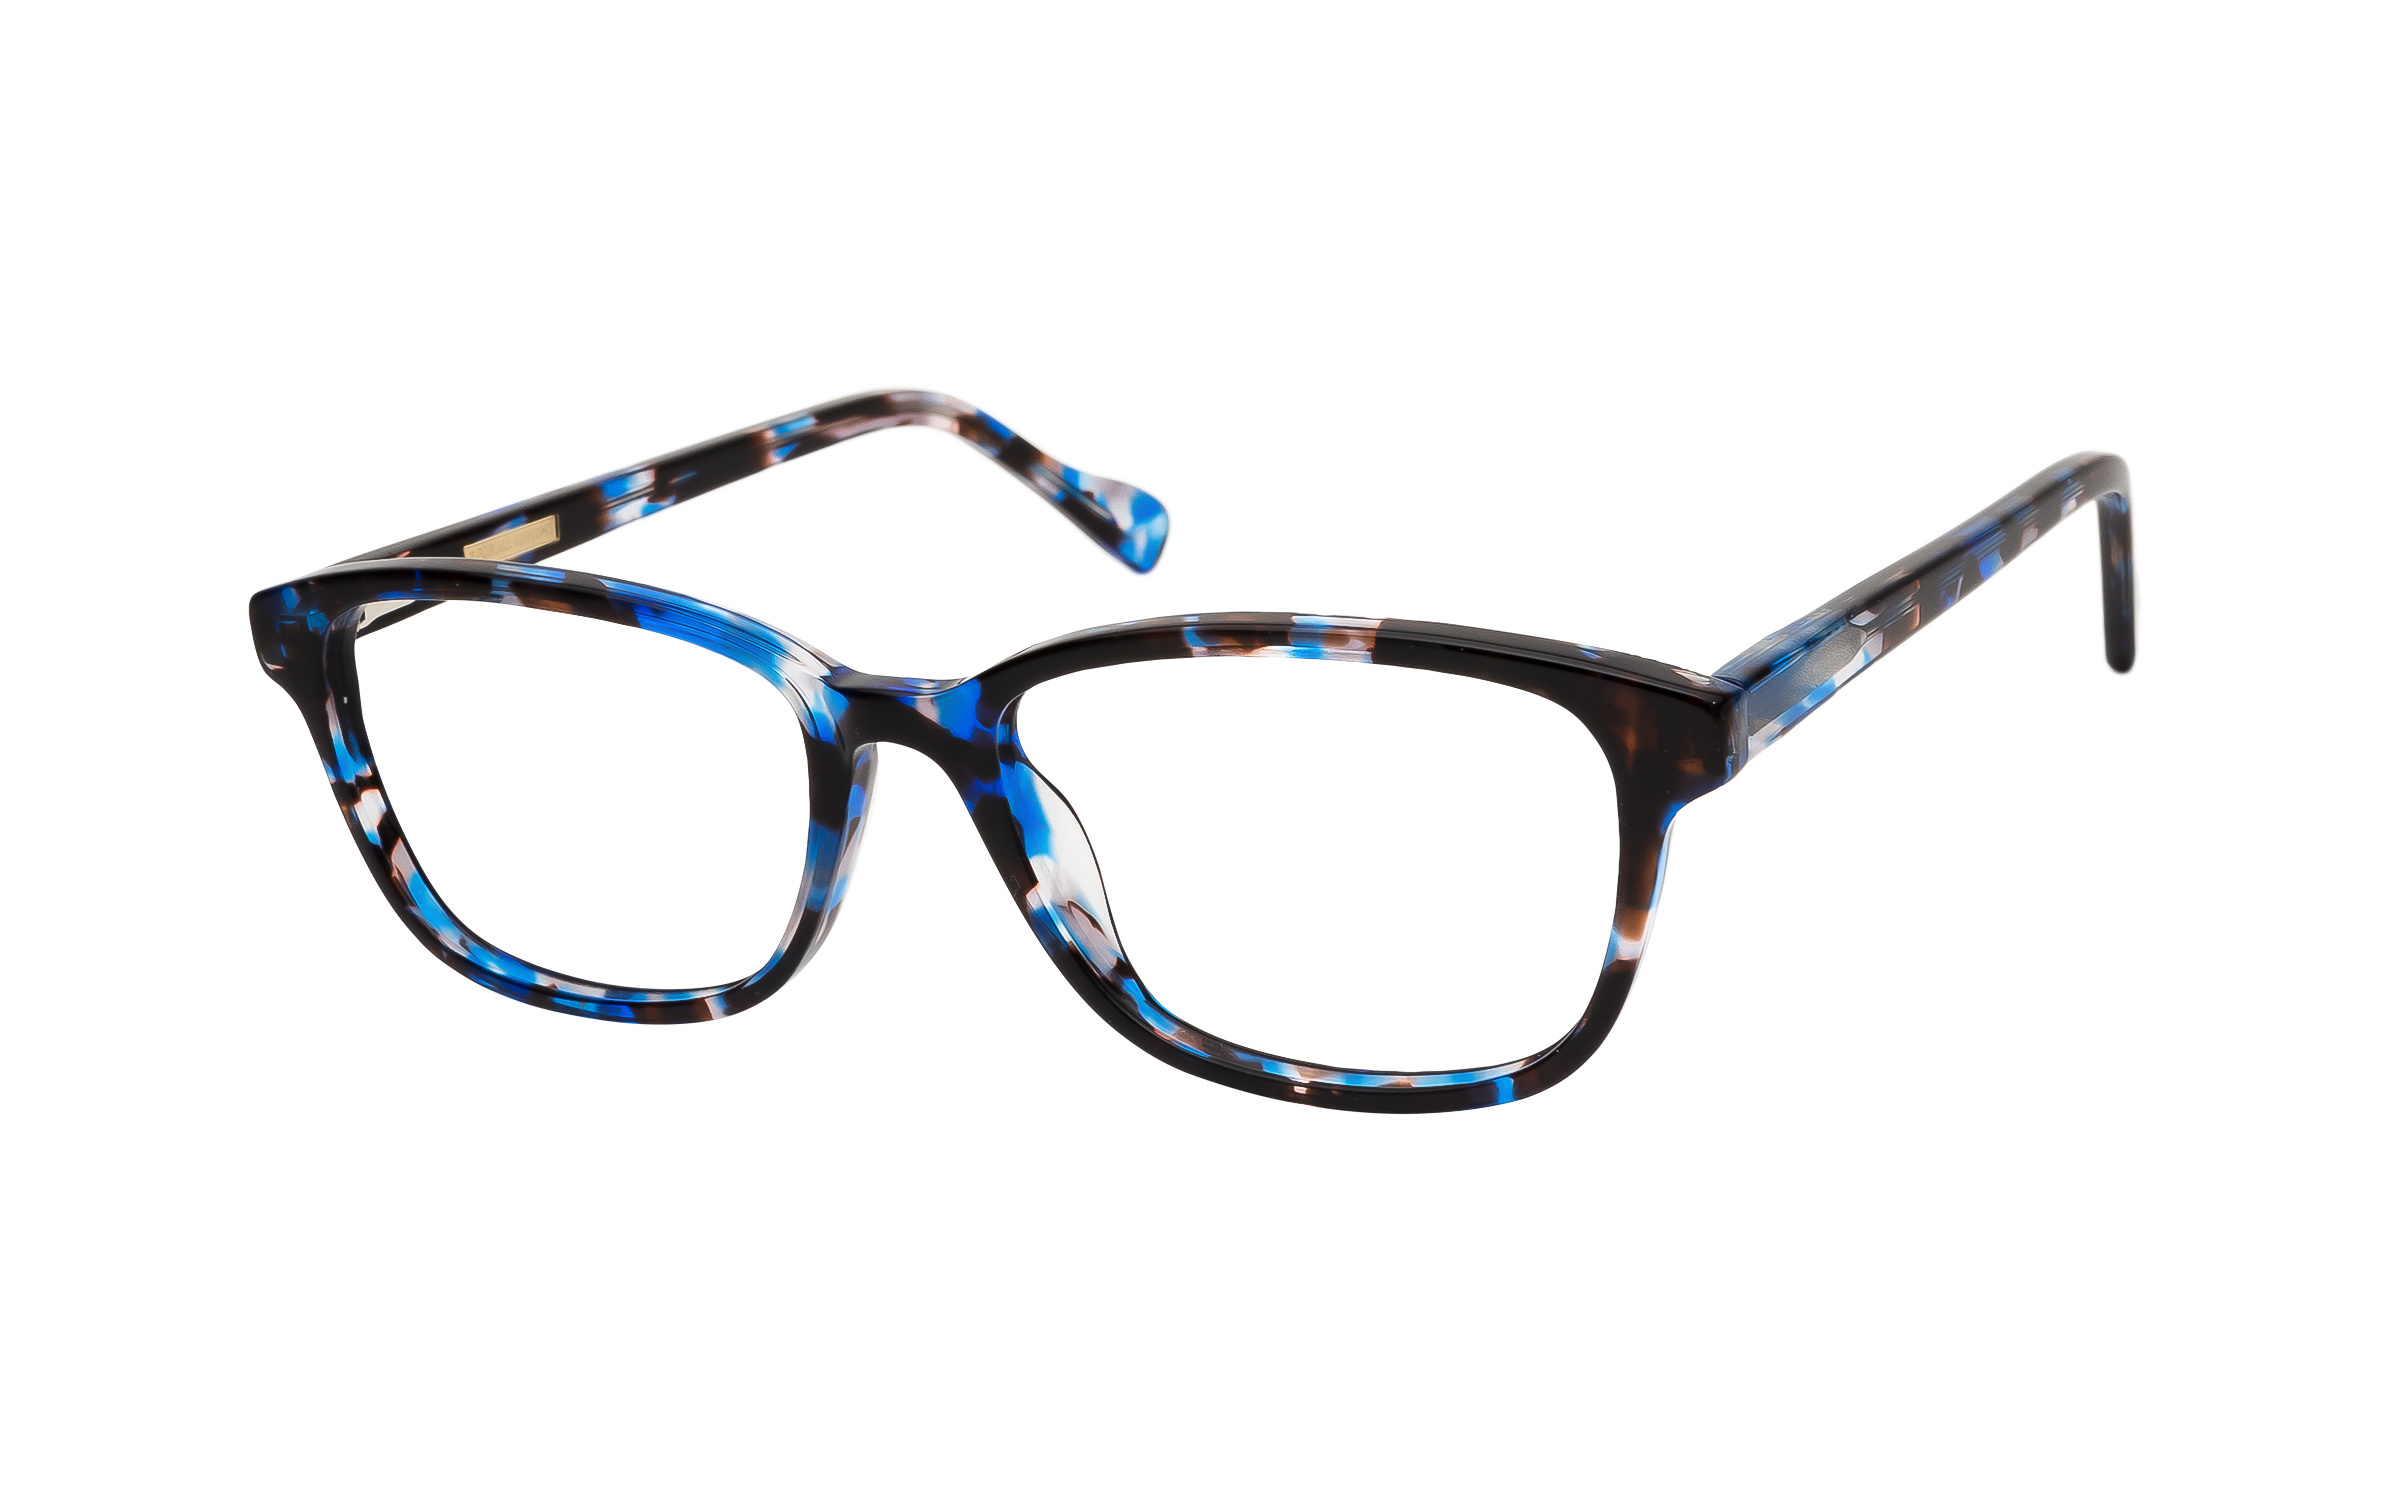 7 for All Mankind Glasses D-Frame Blue/Tortoise Online Clearly